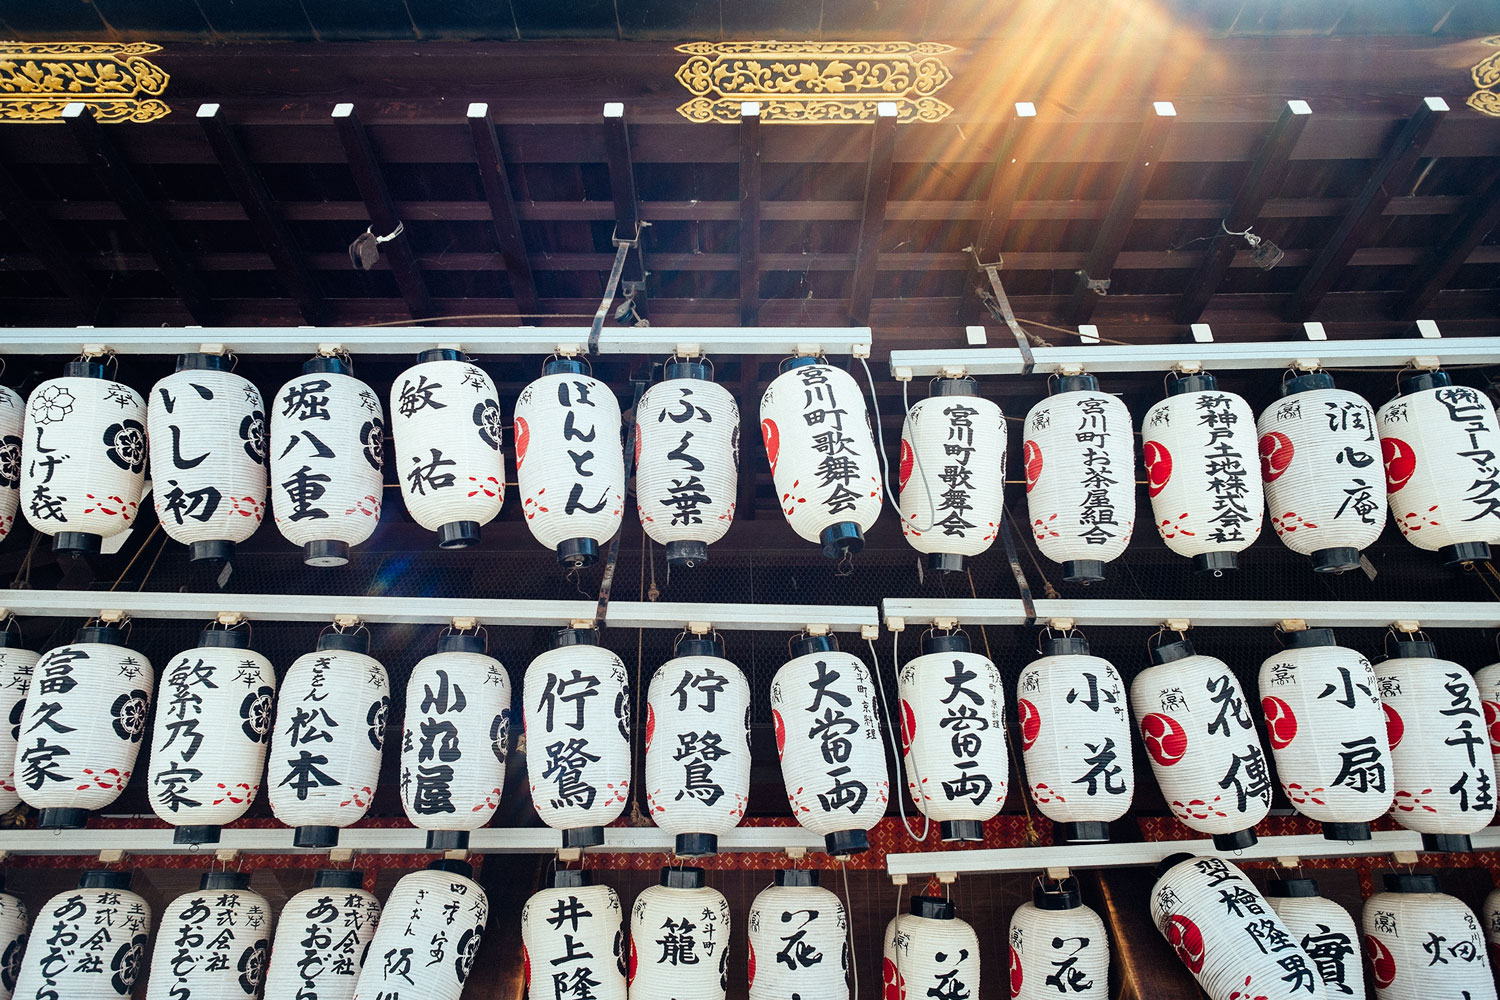 Rice paper lanterns, the evergreen of every single temple in Kyoto